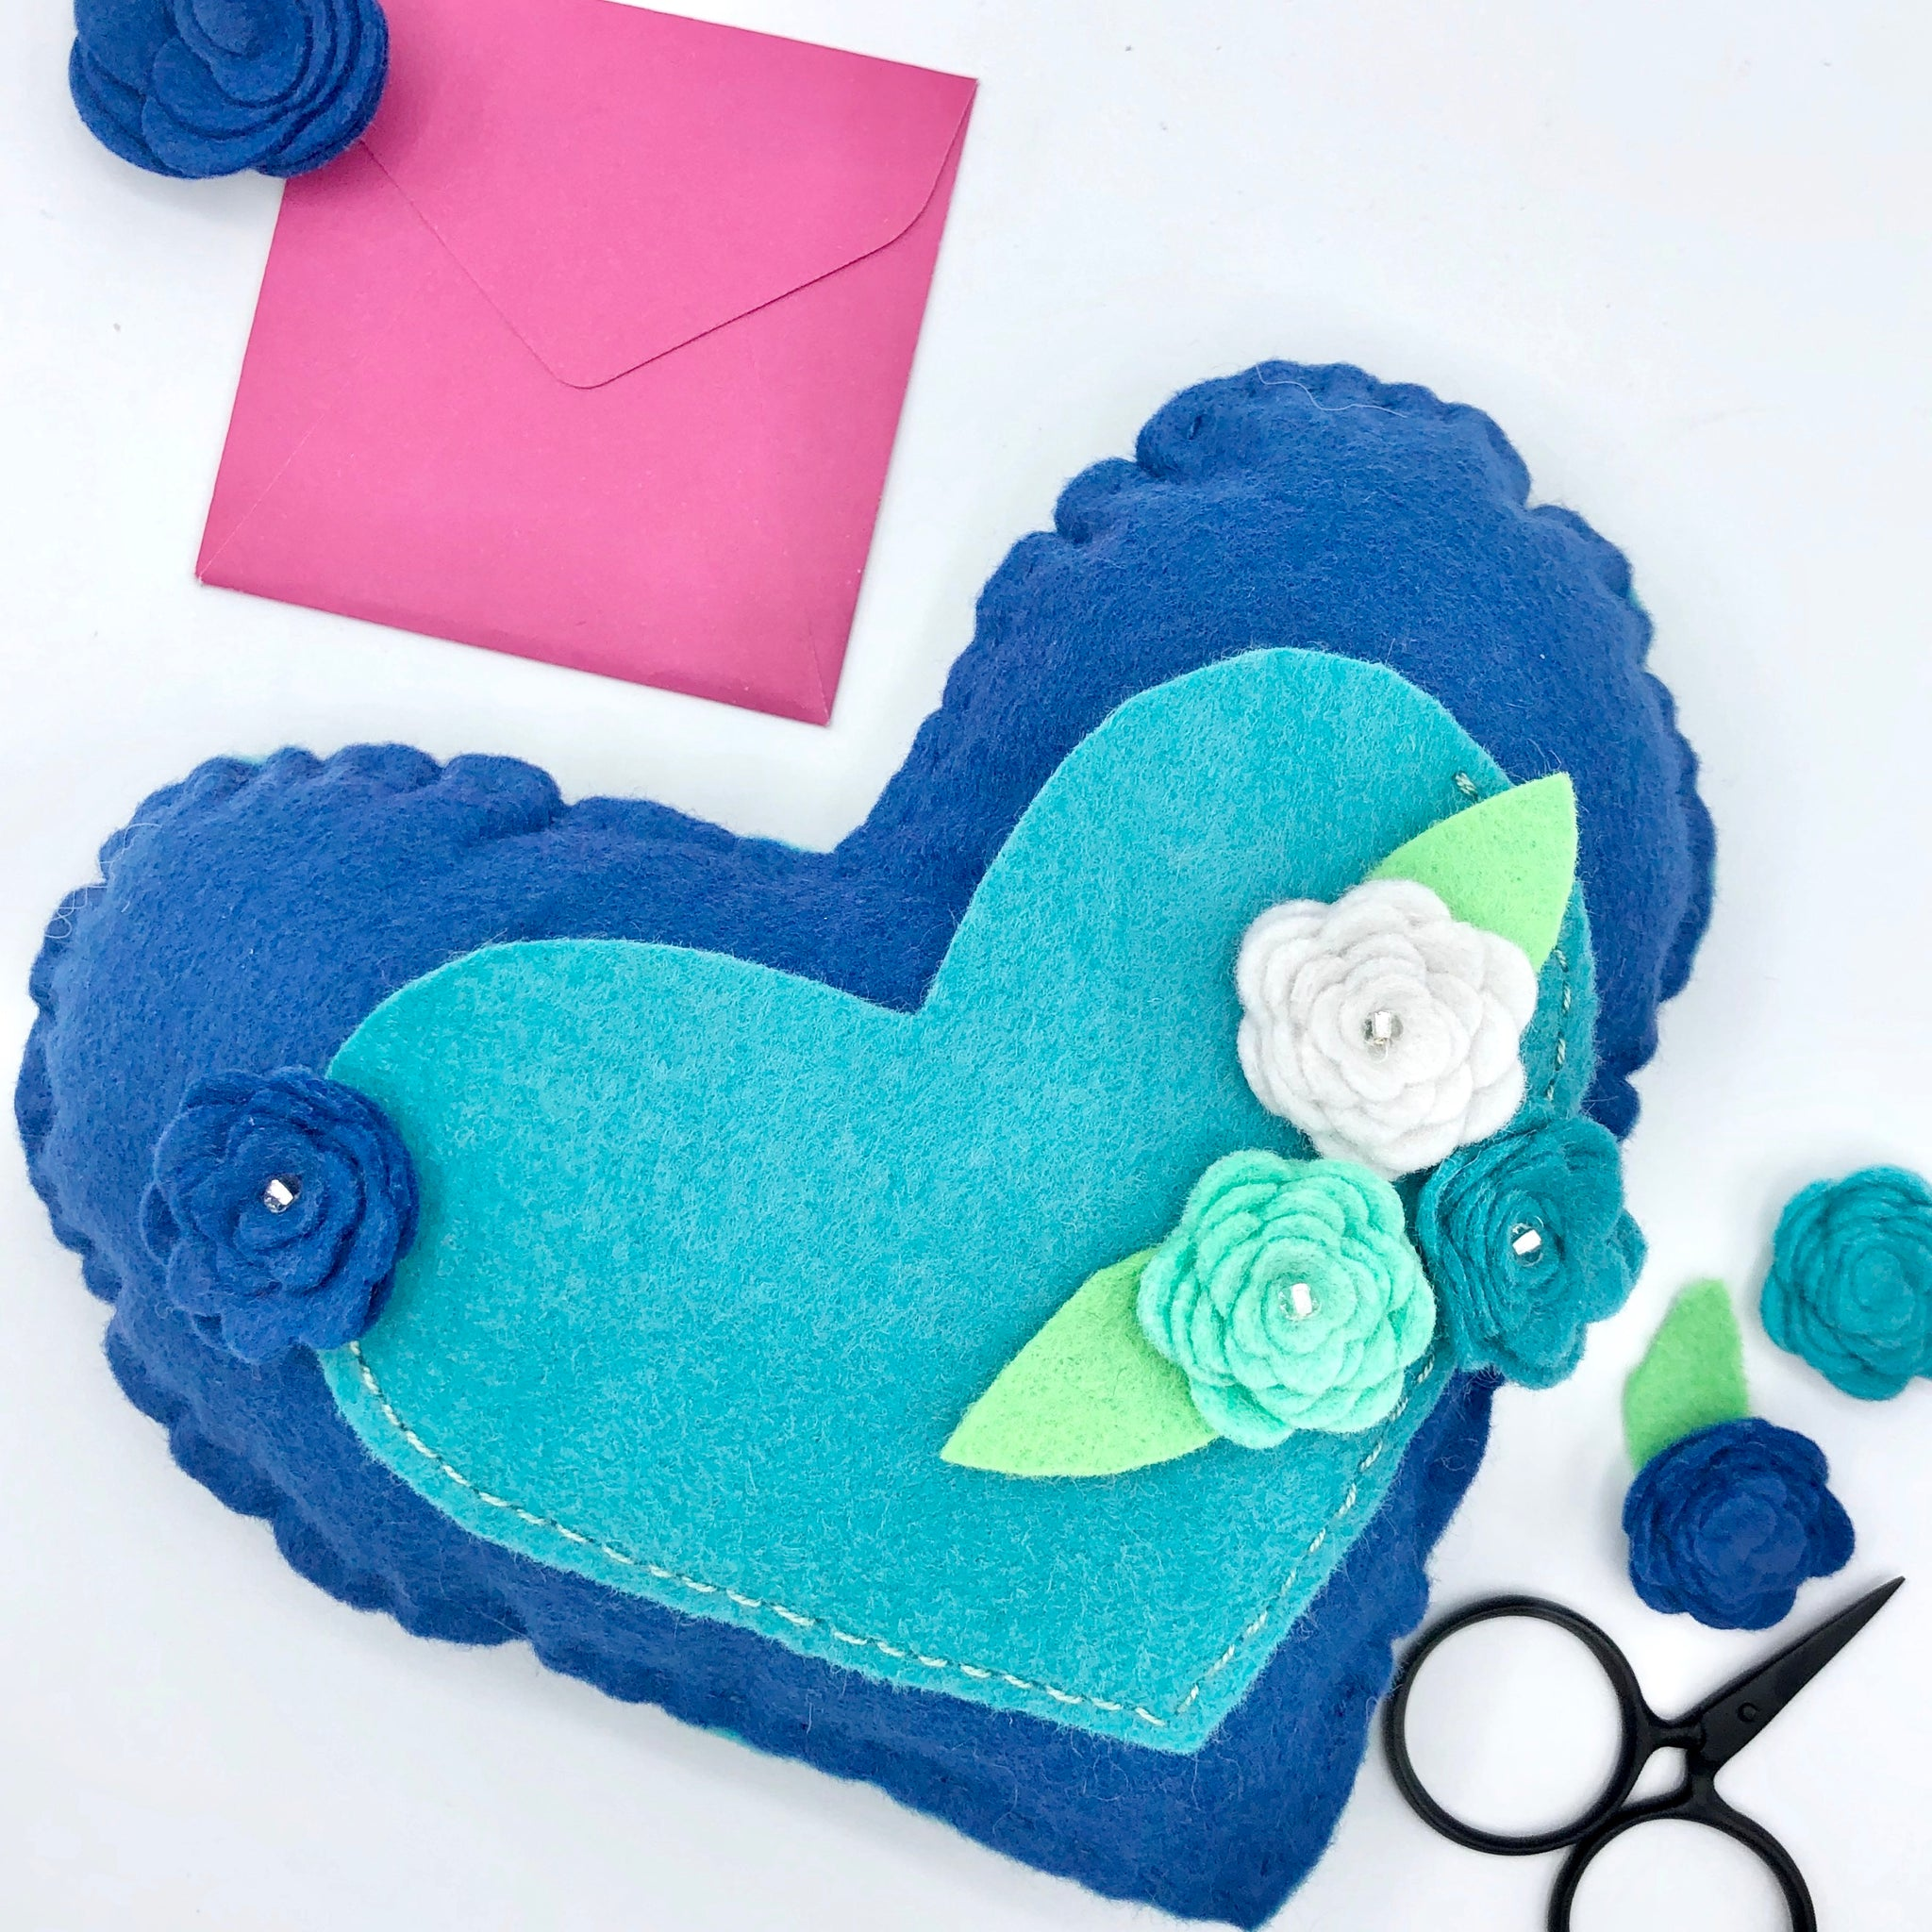 felt kid craft